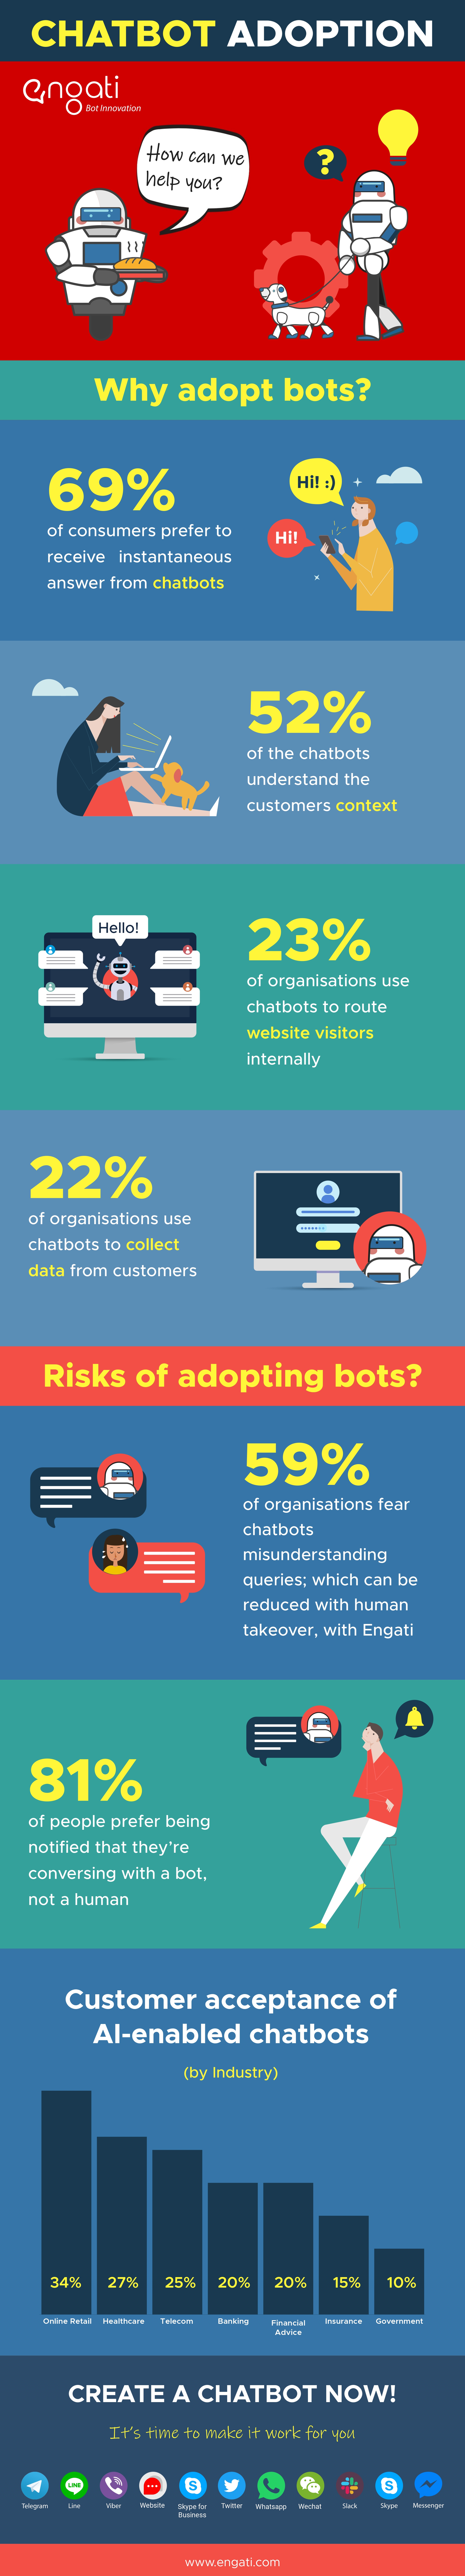 Chatbot adoption infographic